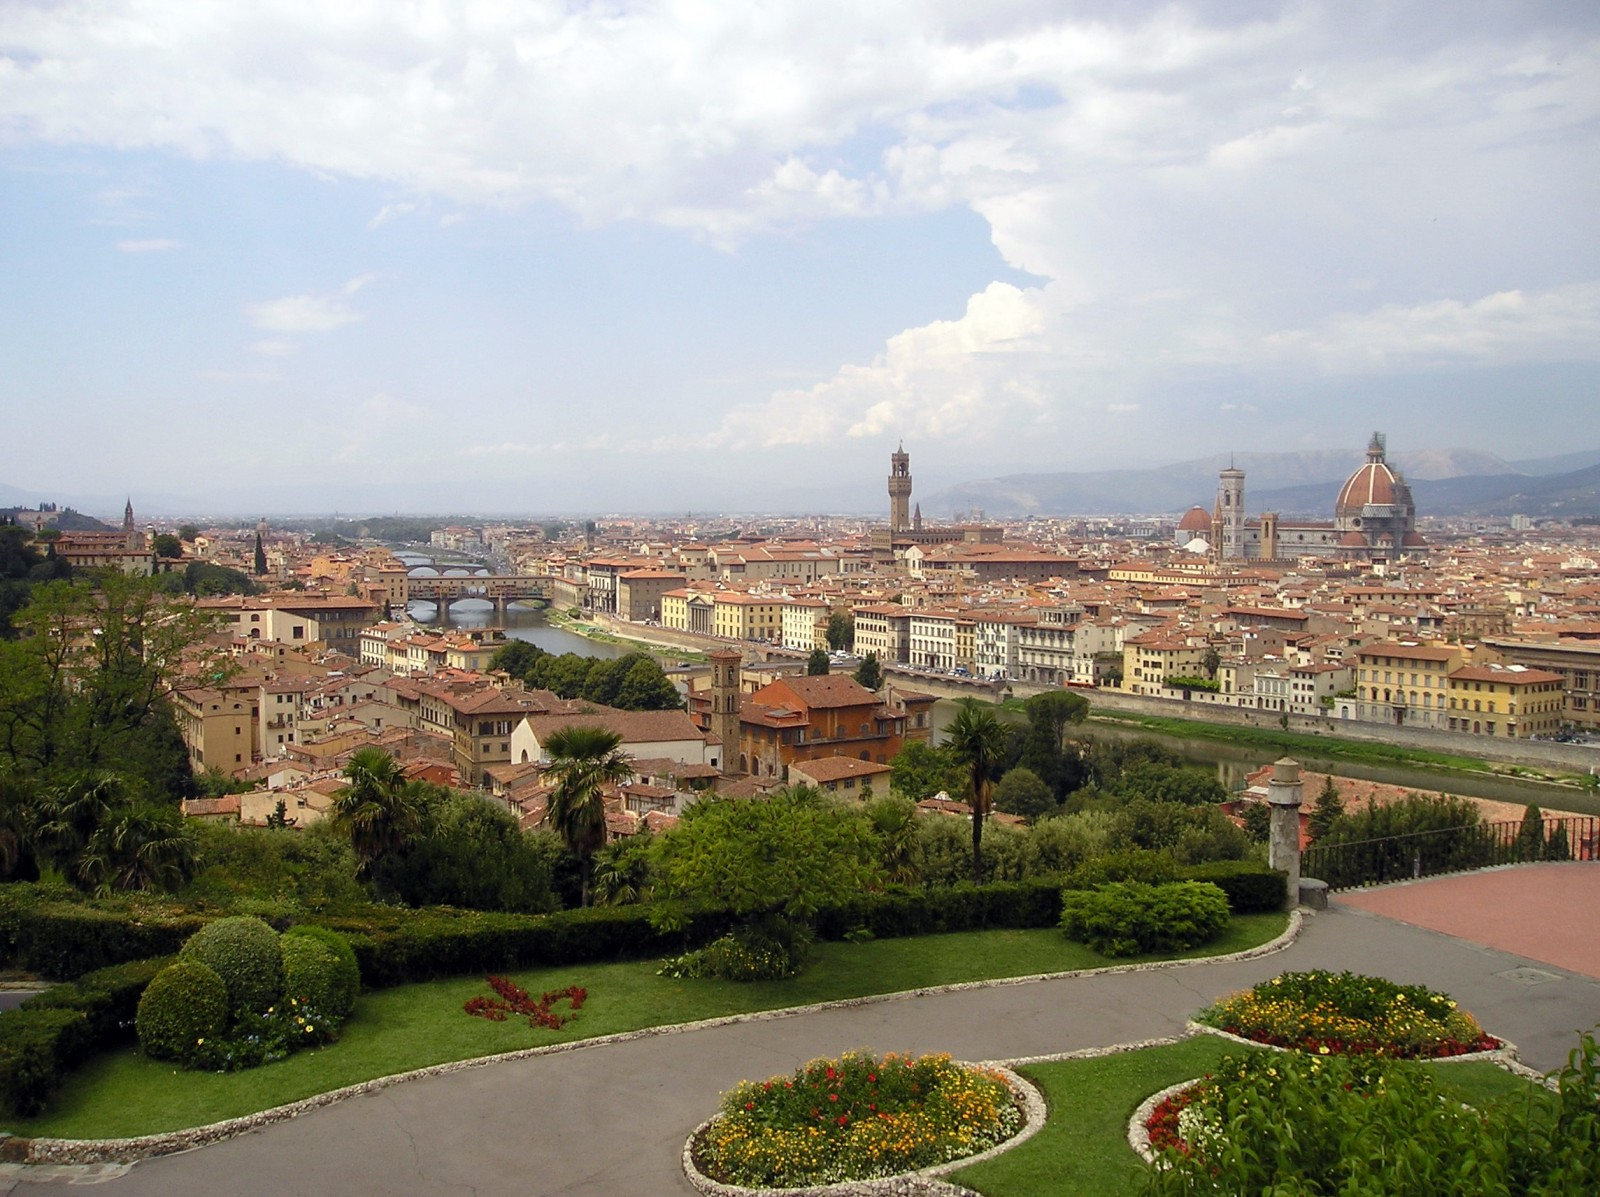 View overlooking Florence in the heart of Tuscany